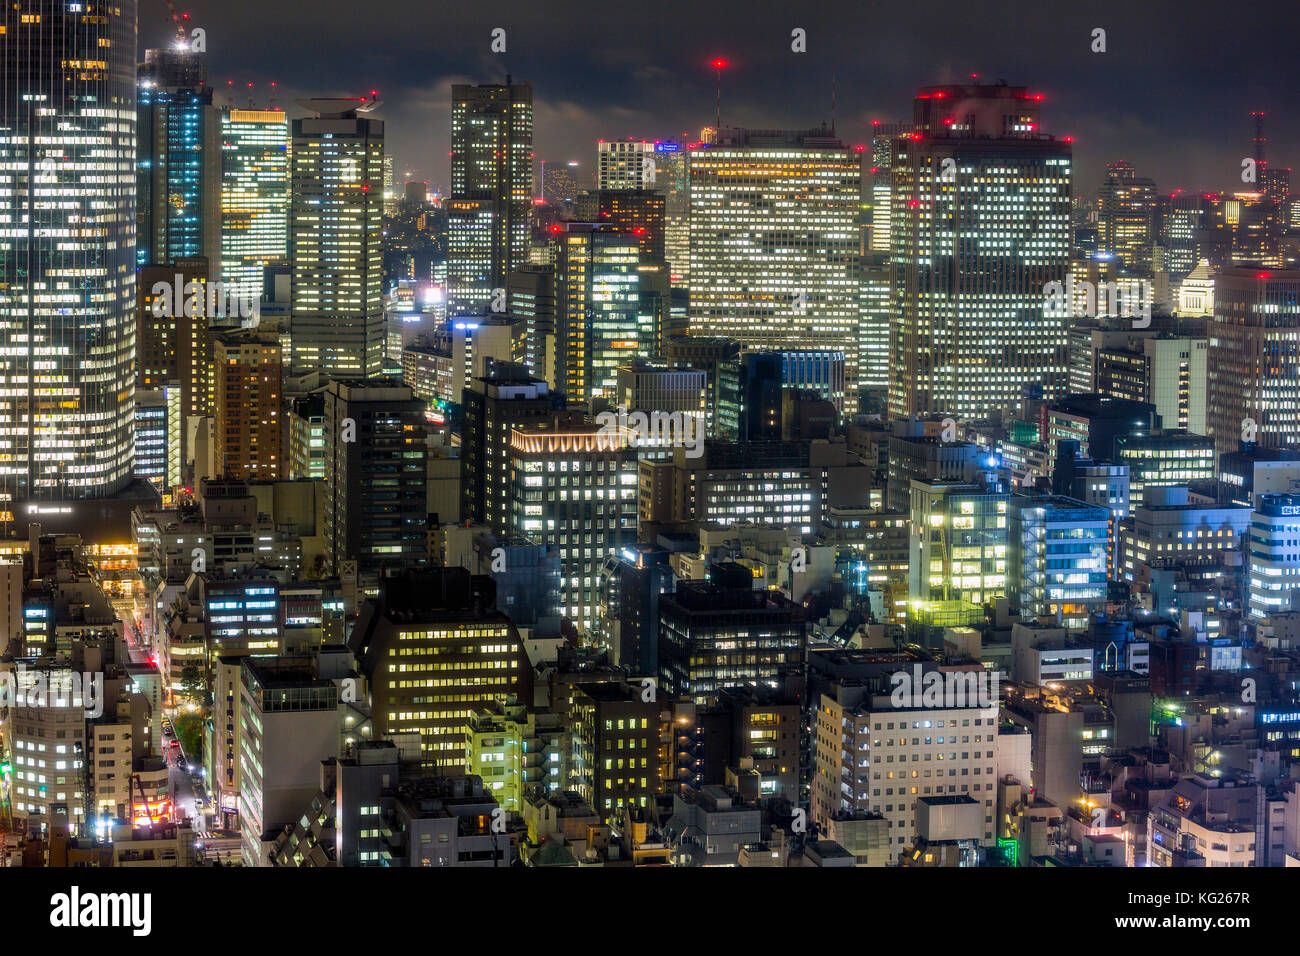 Downtown city buildings at night, Tokyo, Japan, Asia - Stock Image